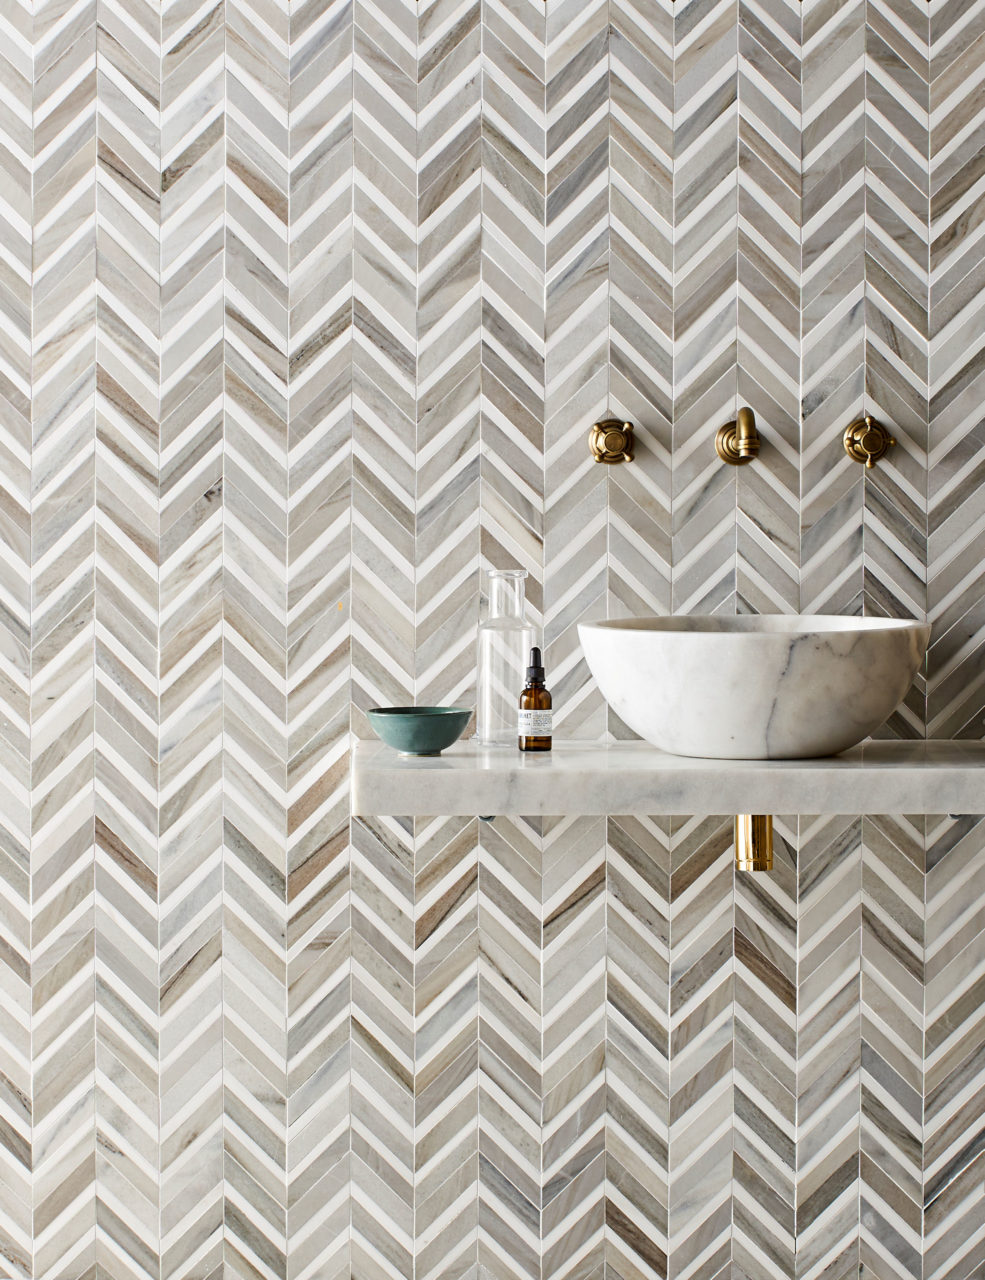 Pyrenees Honed Polished Chevron Mosaic & Calacatta Honed Pluto Basin